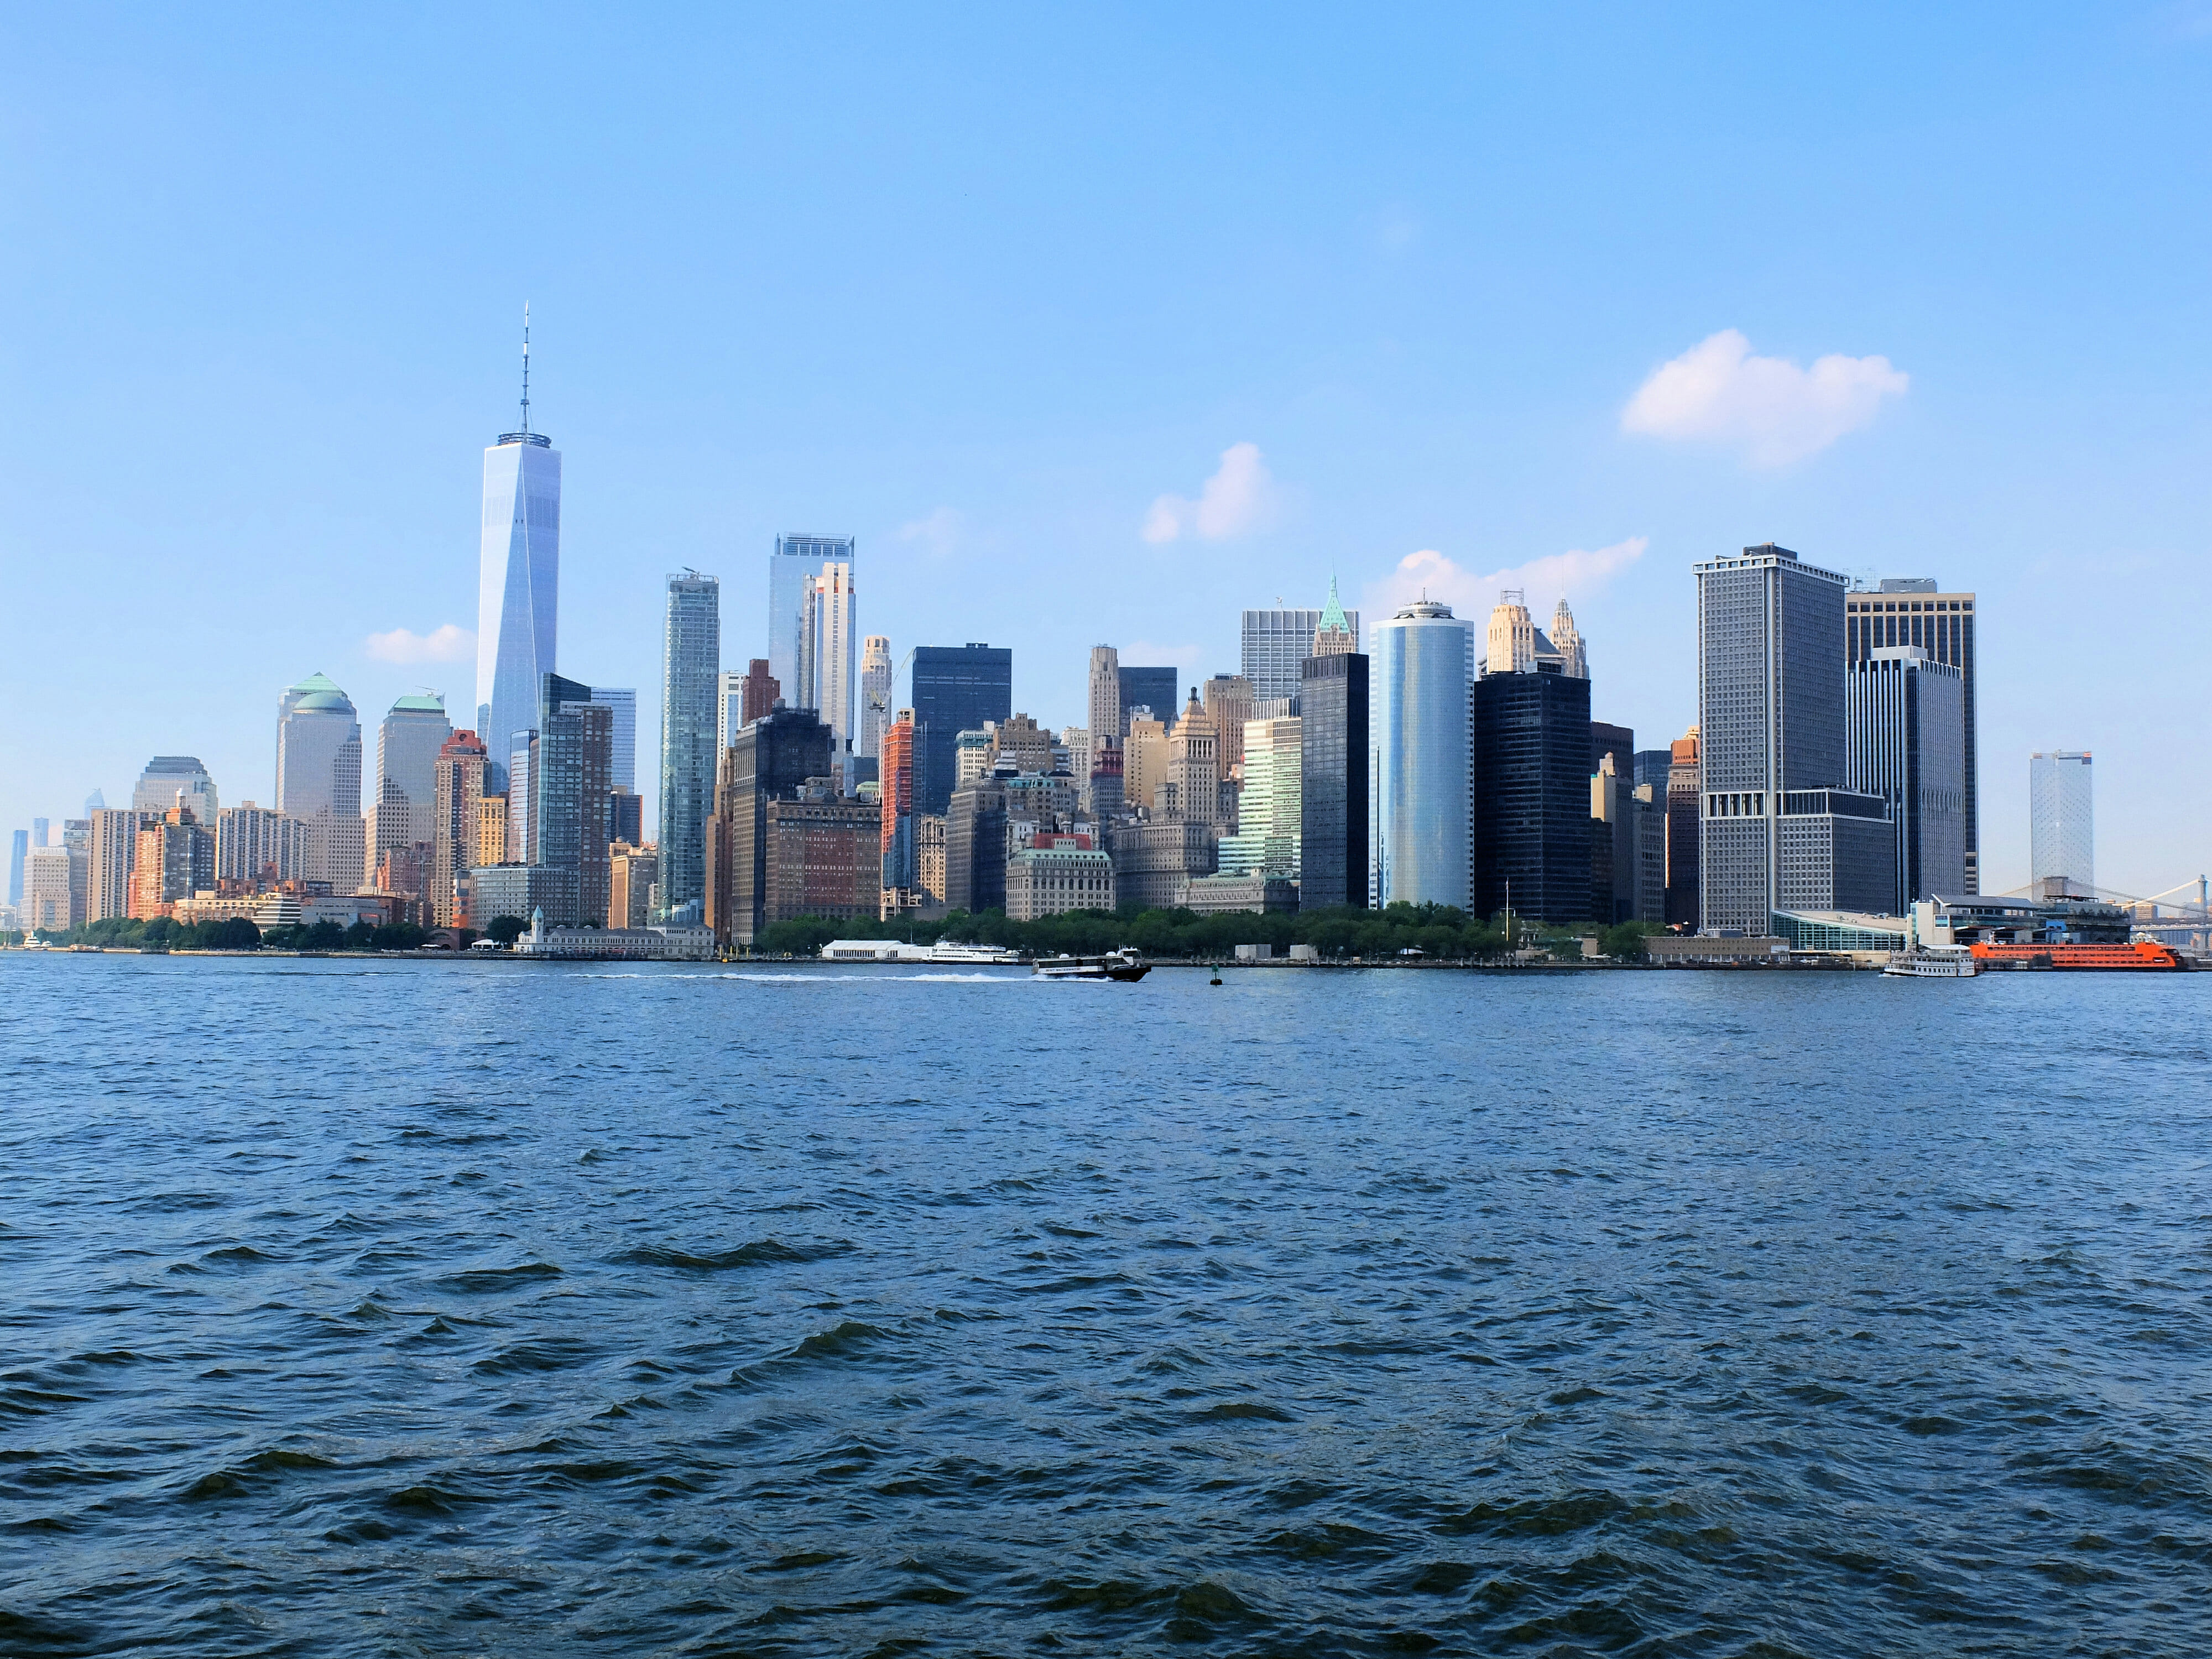 NYC Skyline from cruise – High Quality Wallpaper